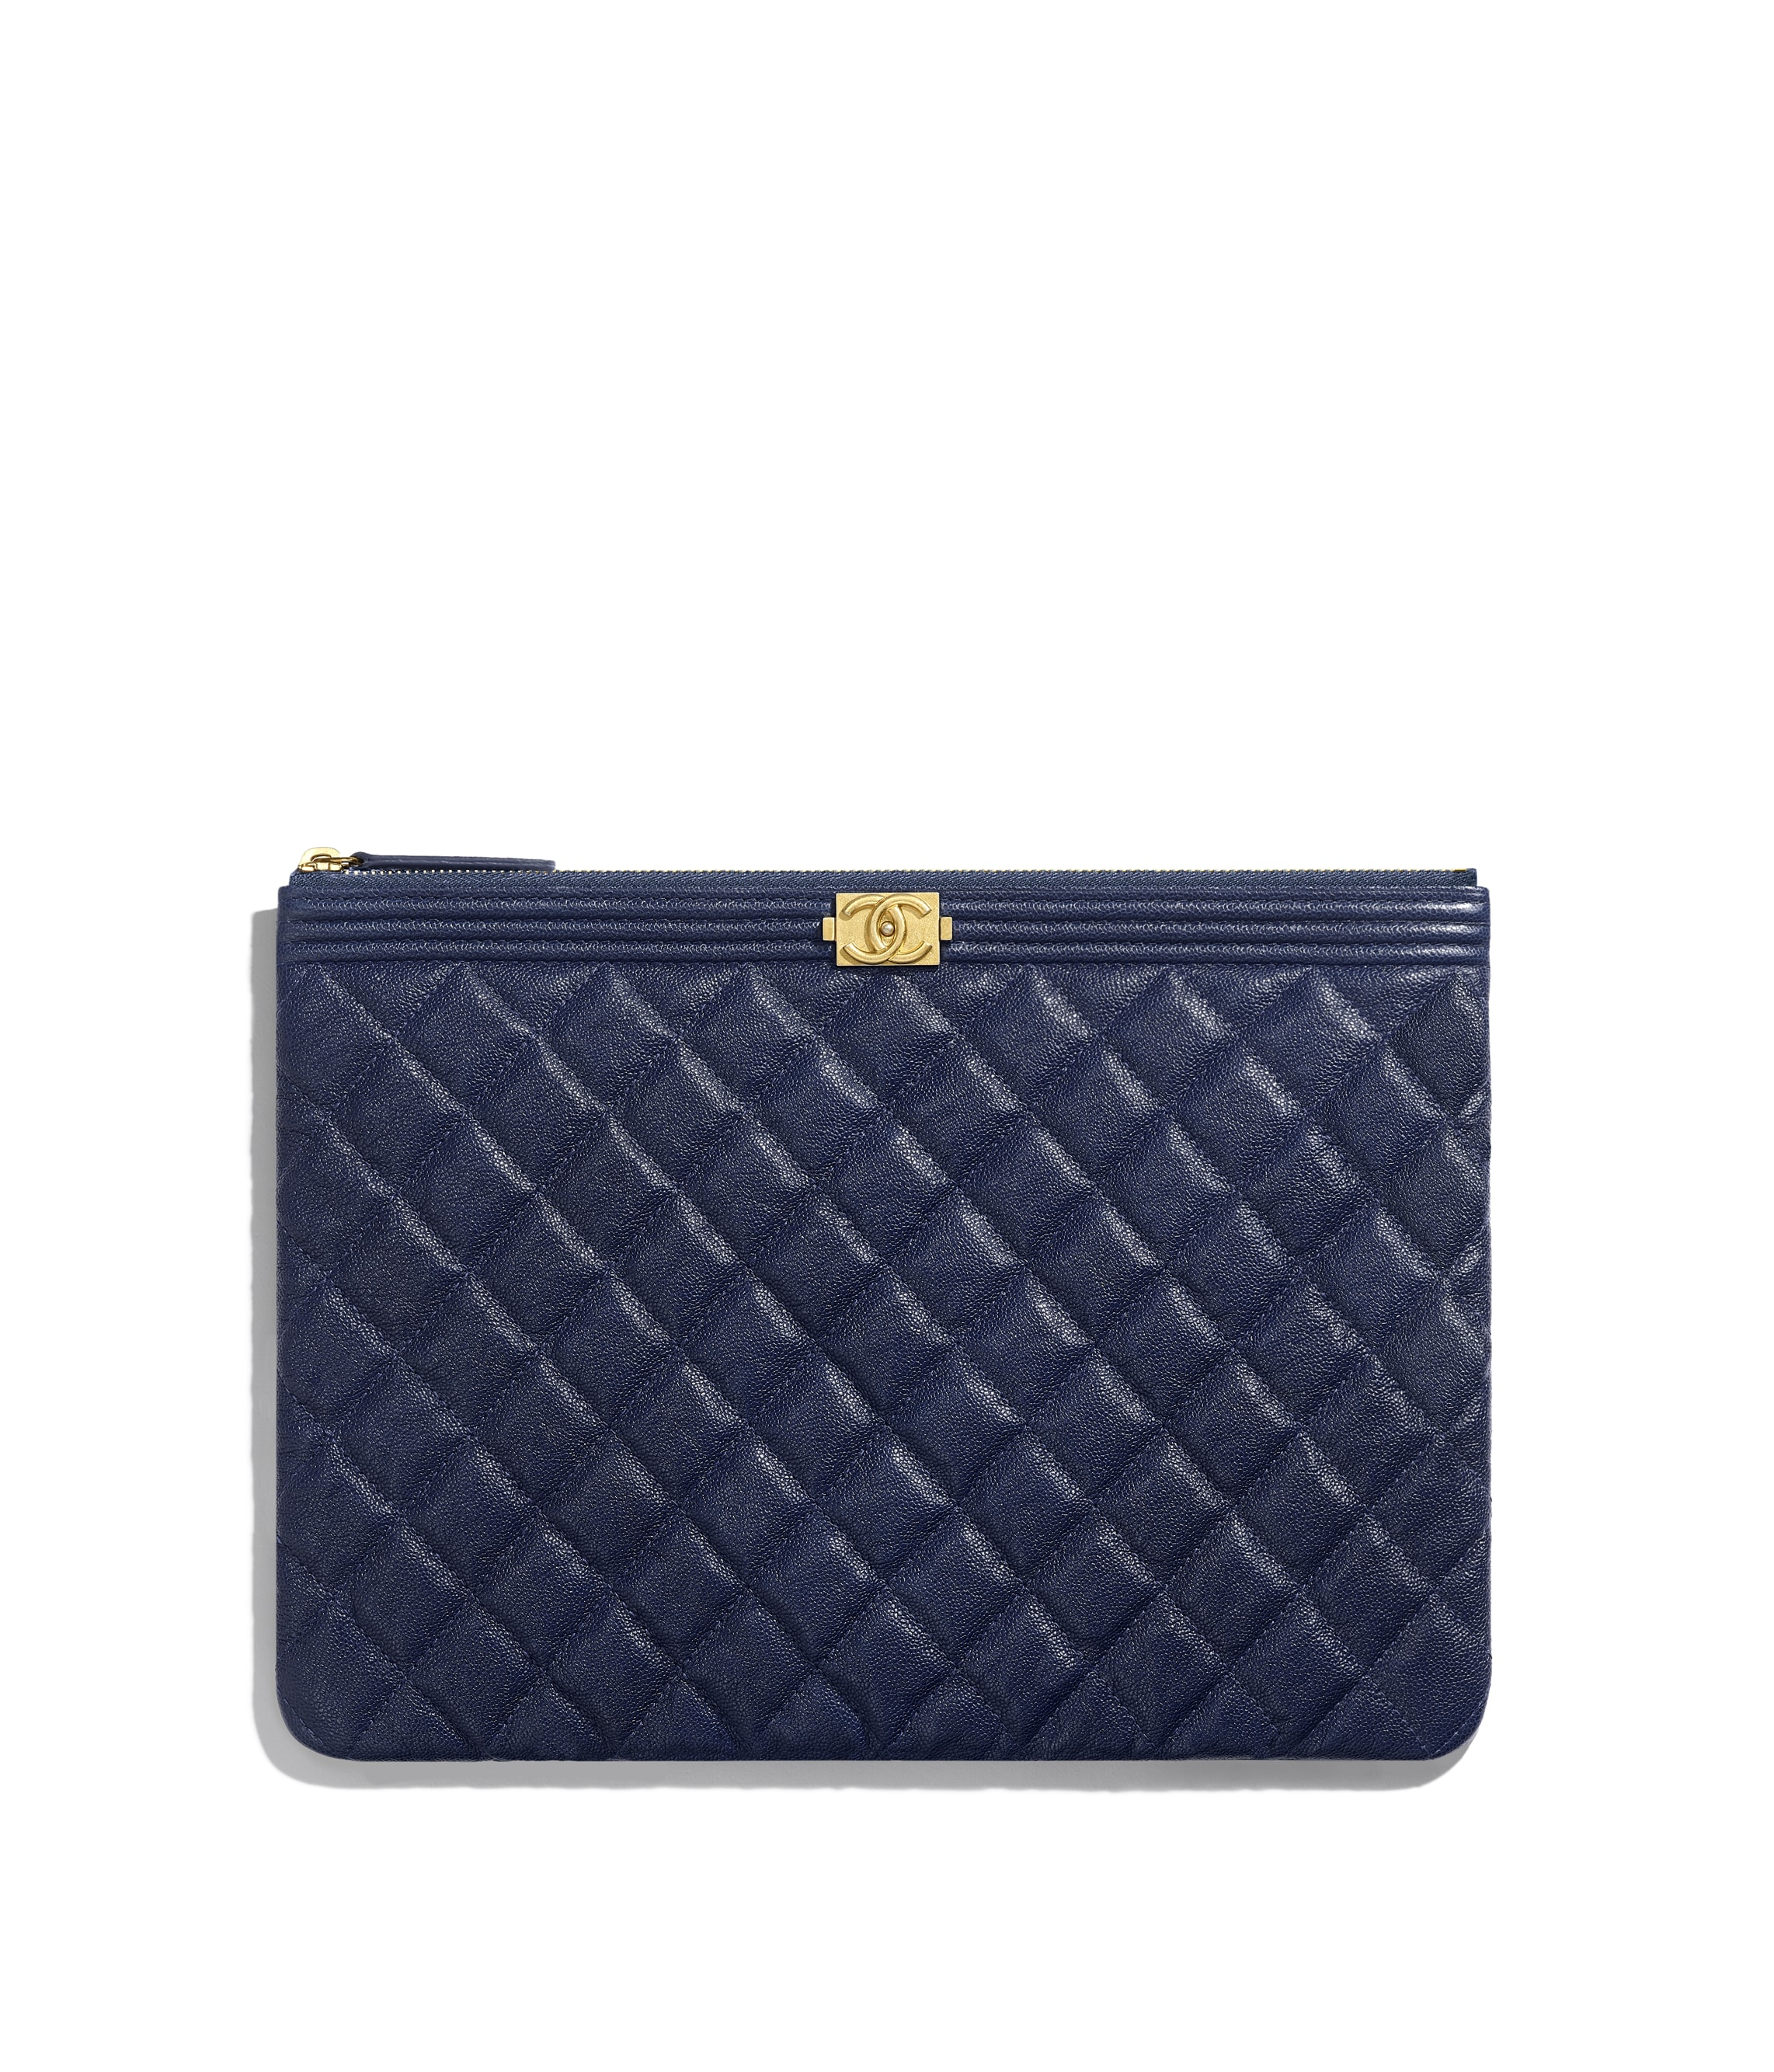 Pochette BOY CHANEL